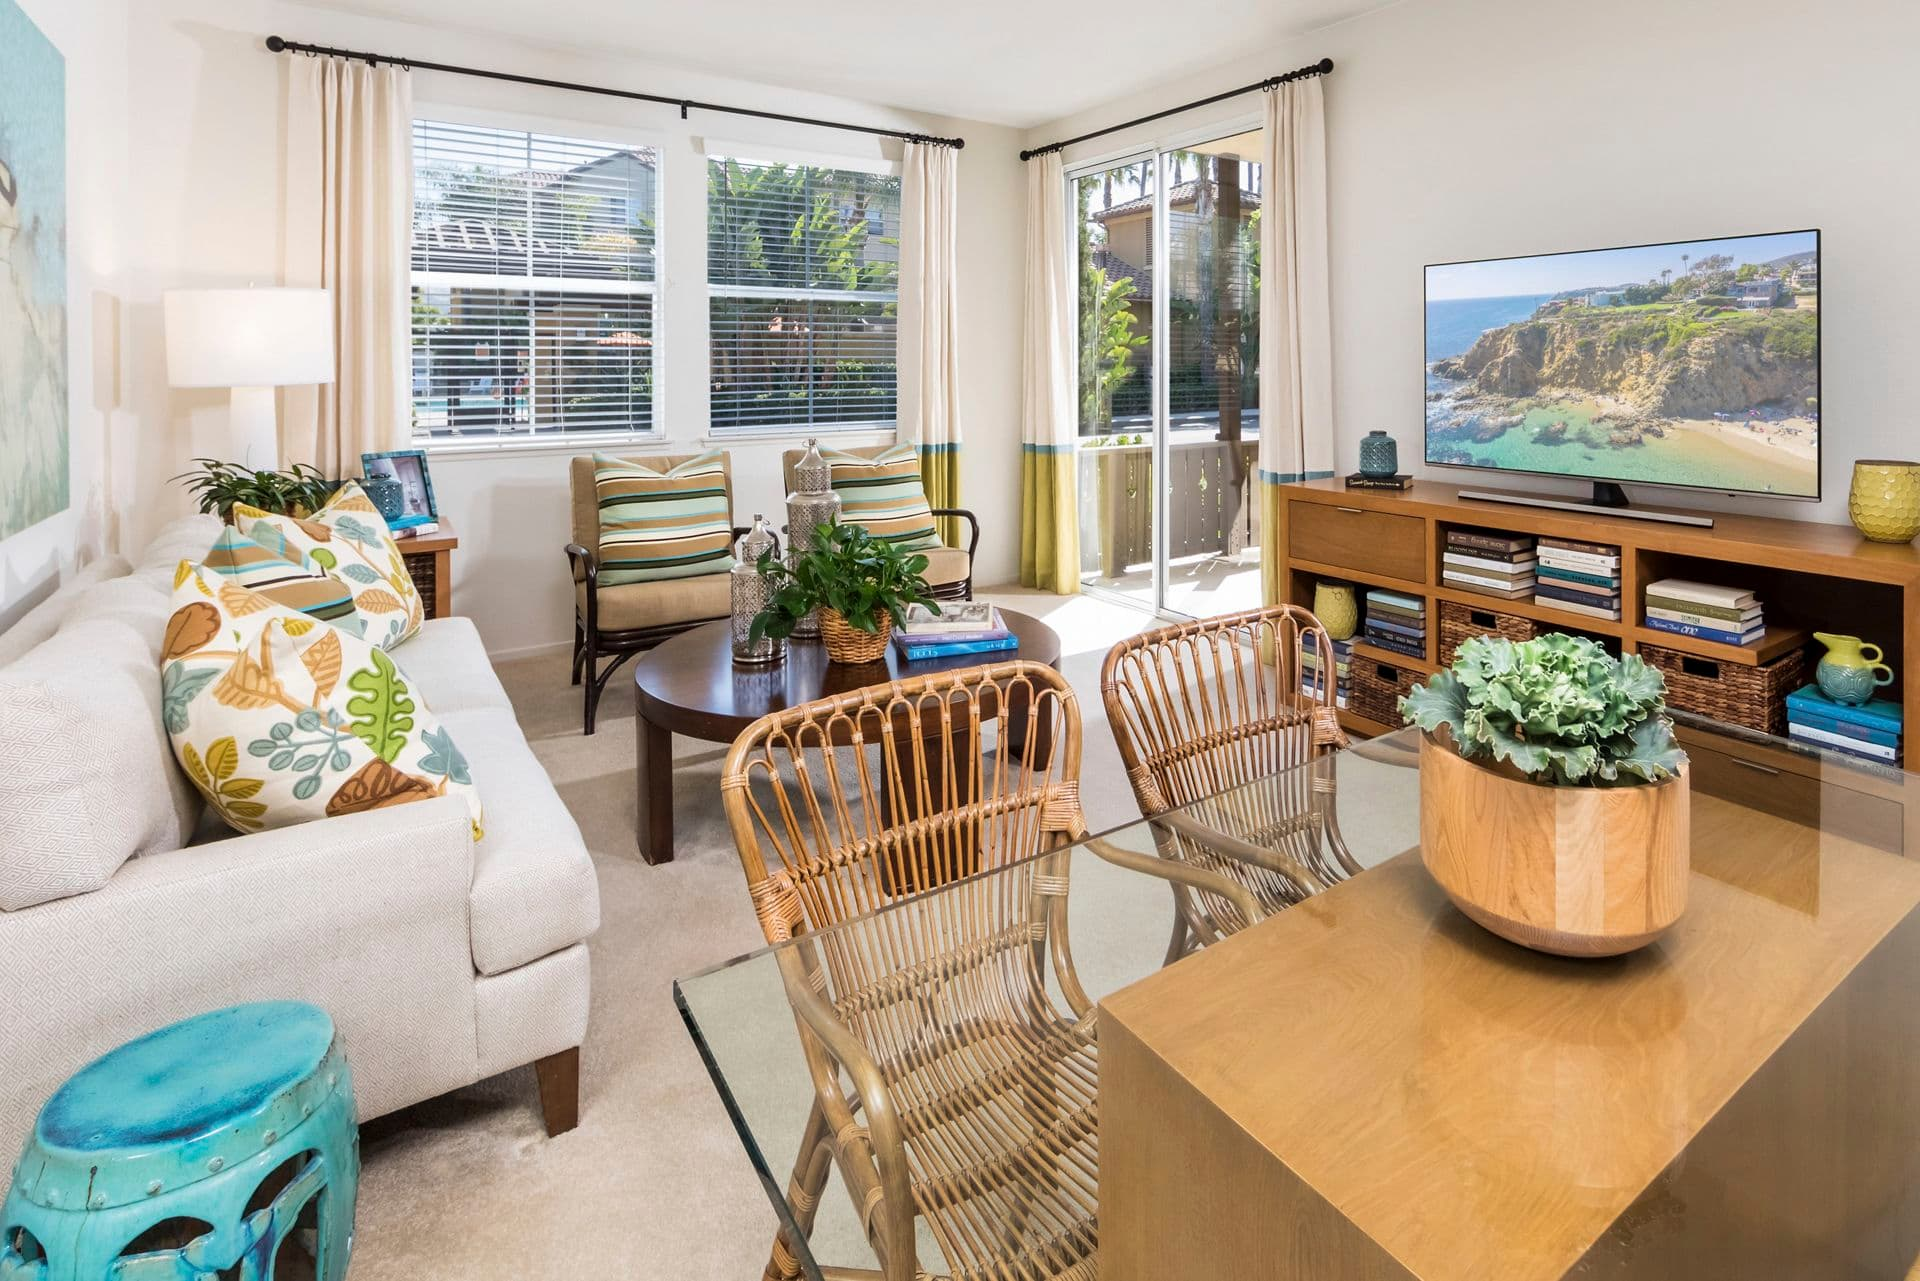 Interior view of living room and dining room at Solana Apartment Homes in Irvine, CA.